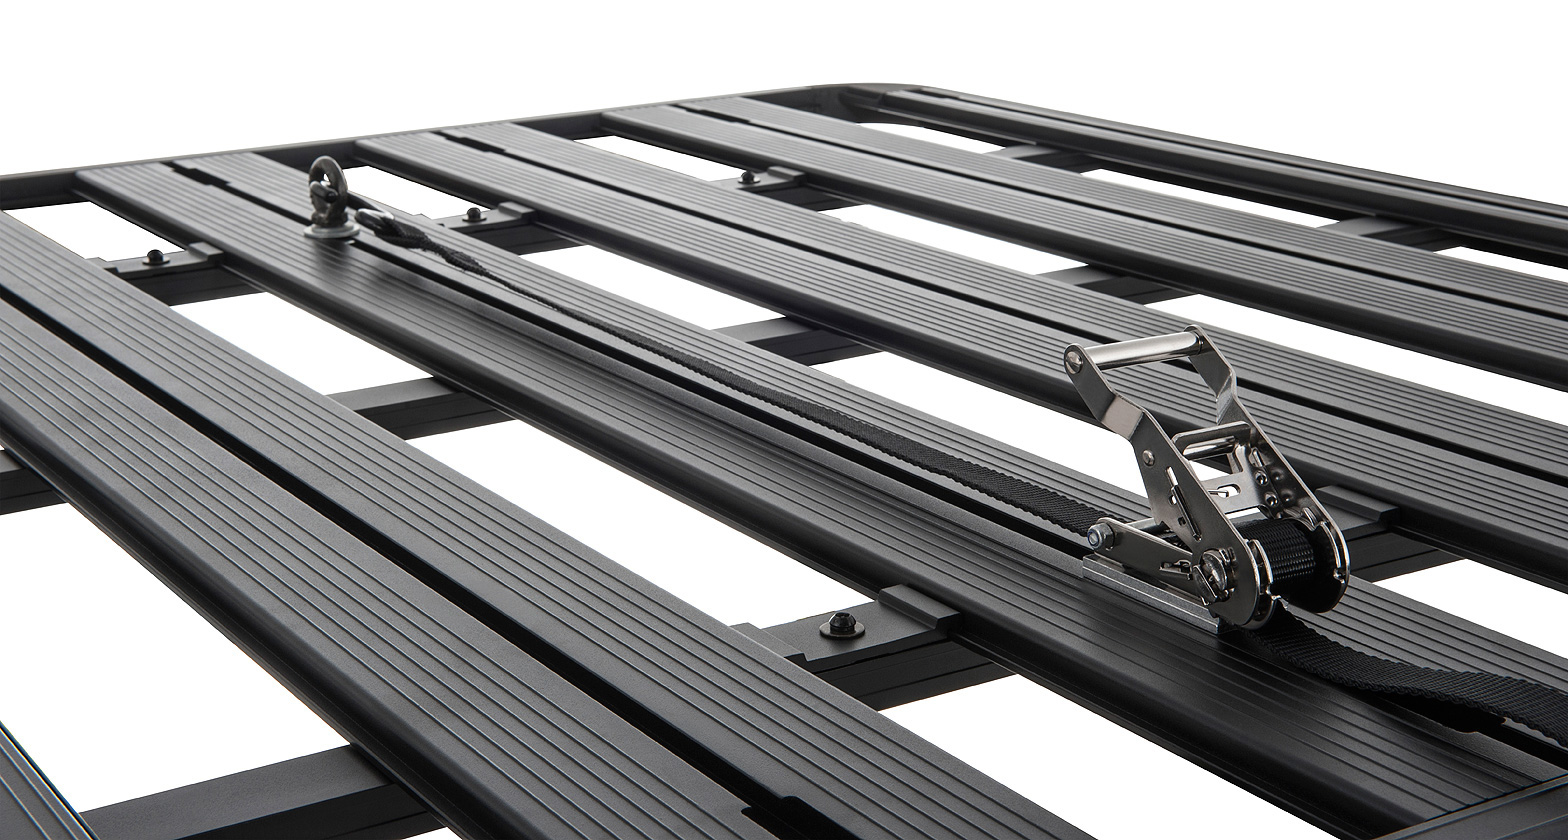 Roof Rack City Rhino Rack Pioneer Ratchet Grab 43139 Roof Rack City Adelaide